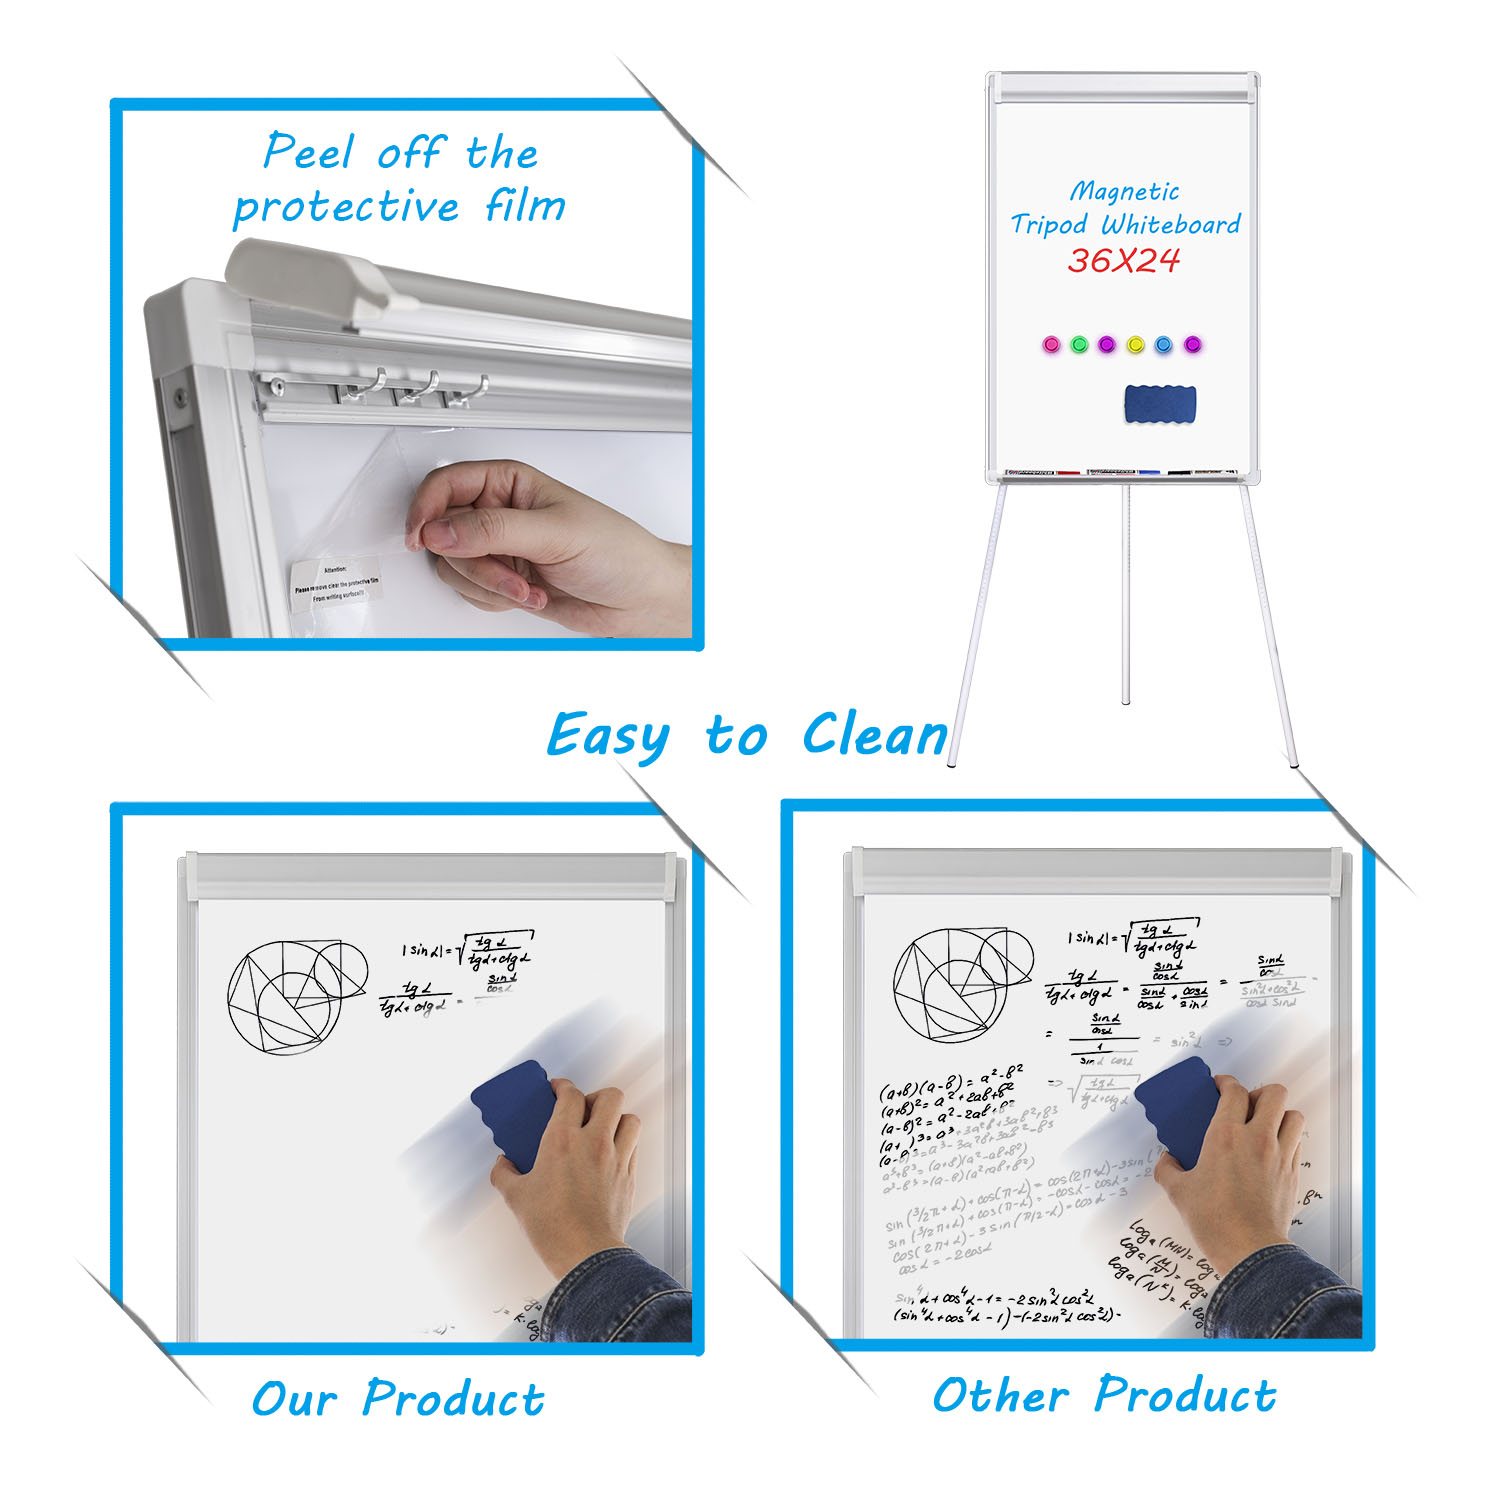 Magnetic Tripod Whiteboard